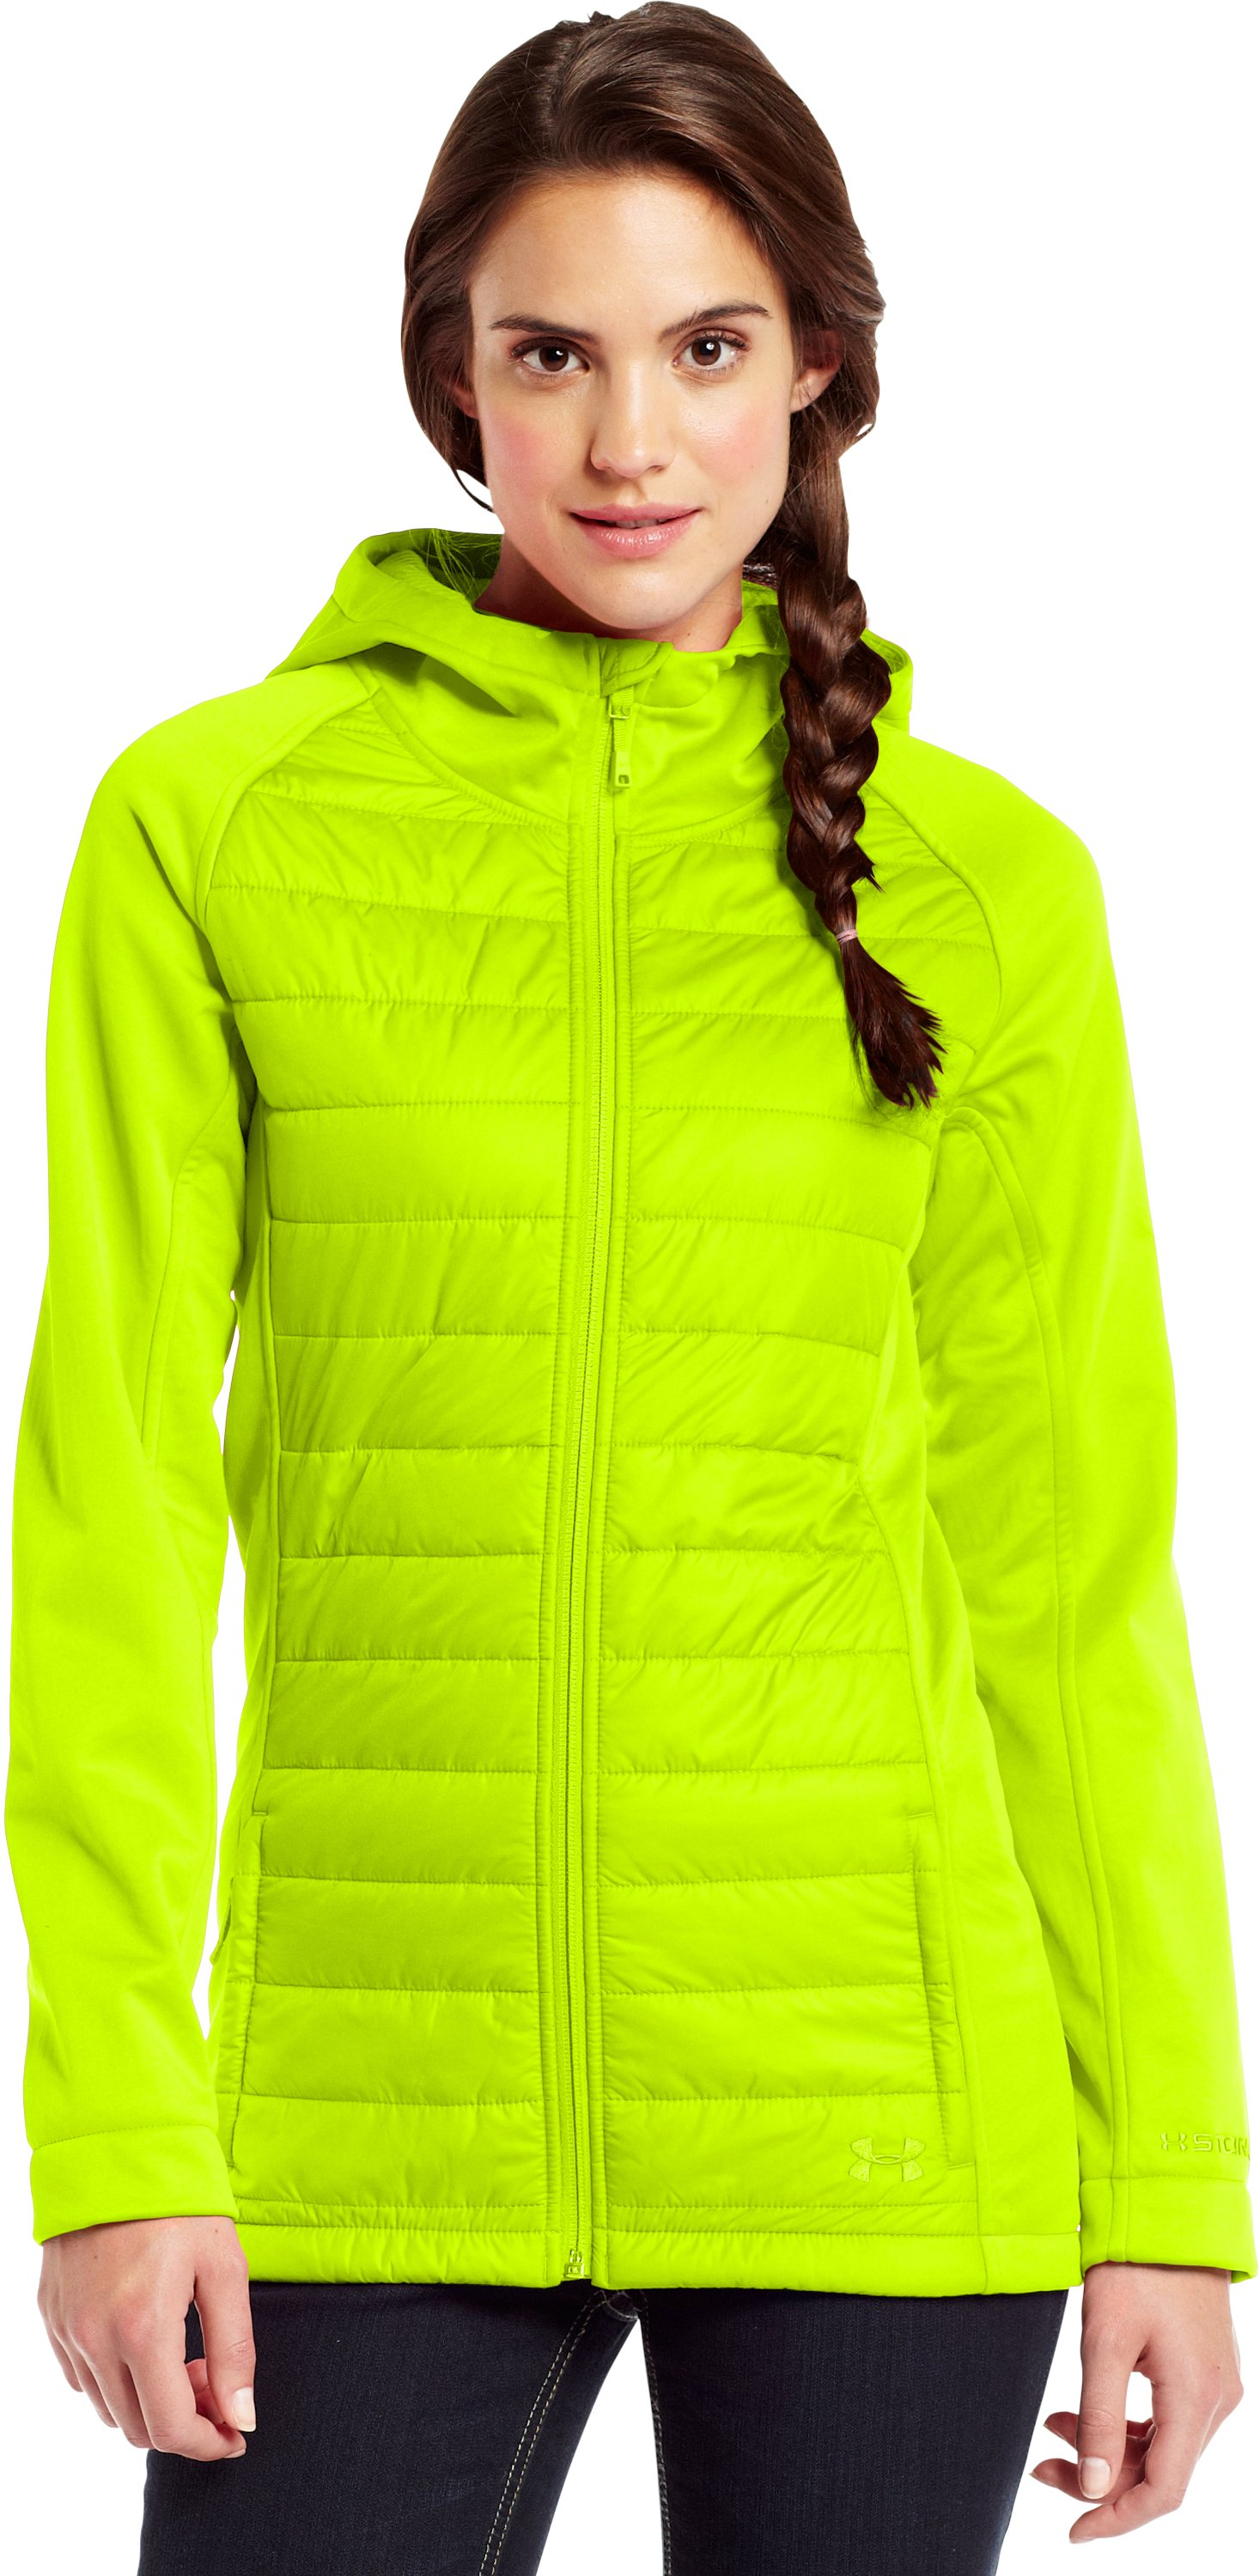 Women's ColdGear® Infrared Werewolf Jacket, High-Vis Yellow